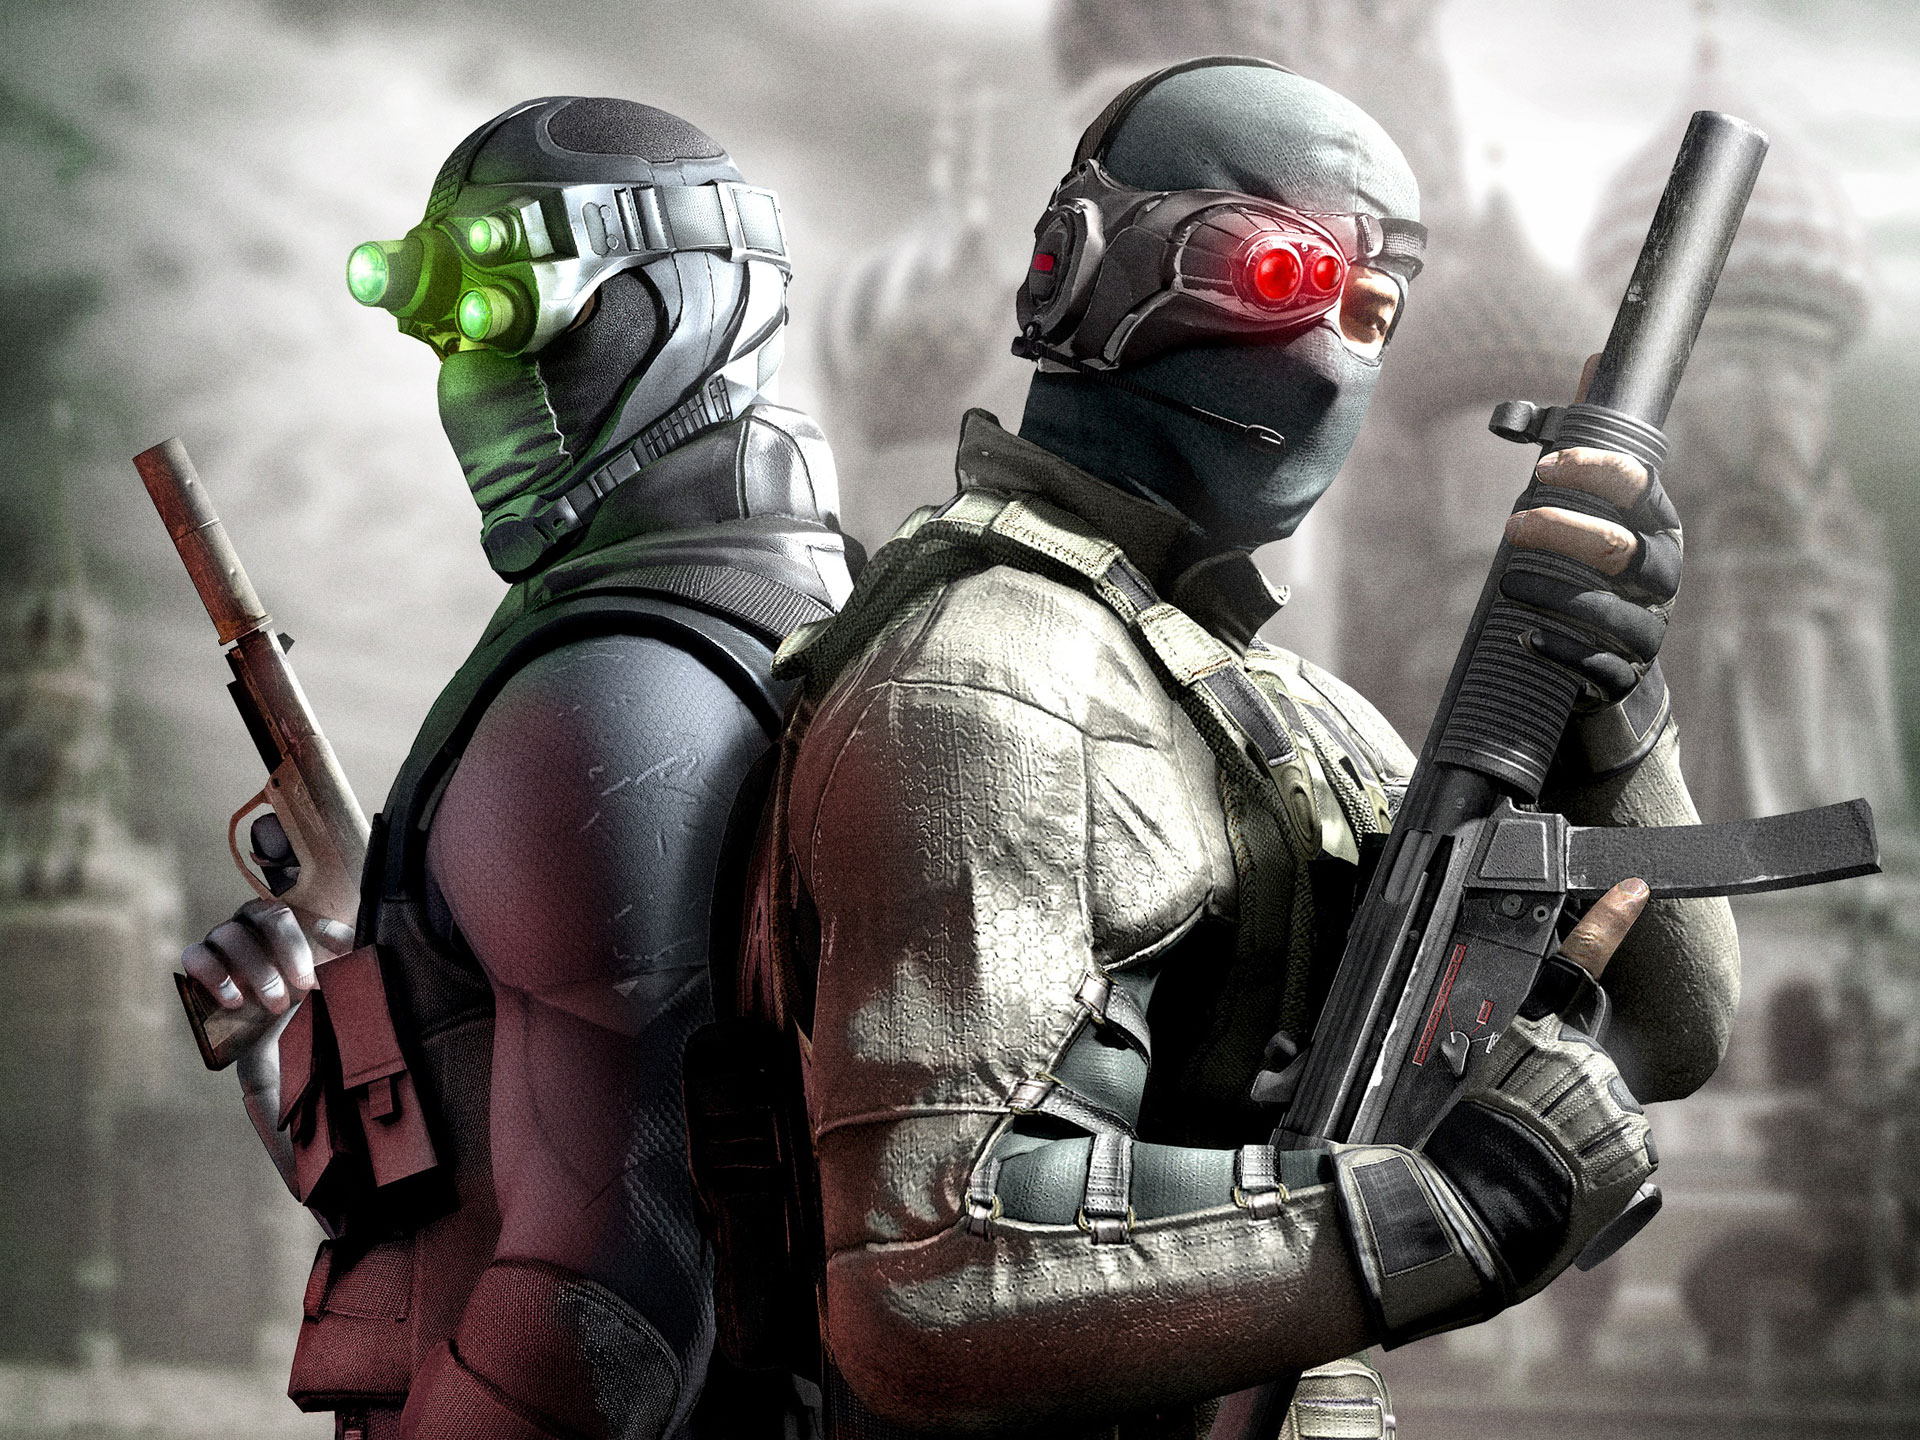 Splinter Cell headed to Hollywood?